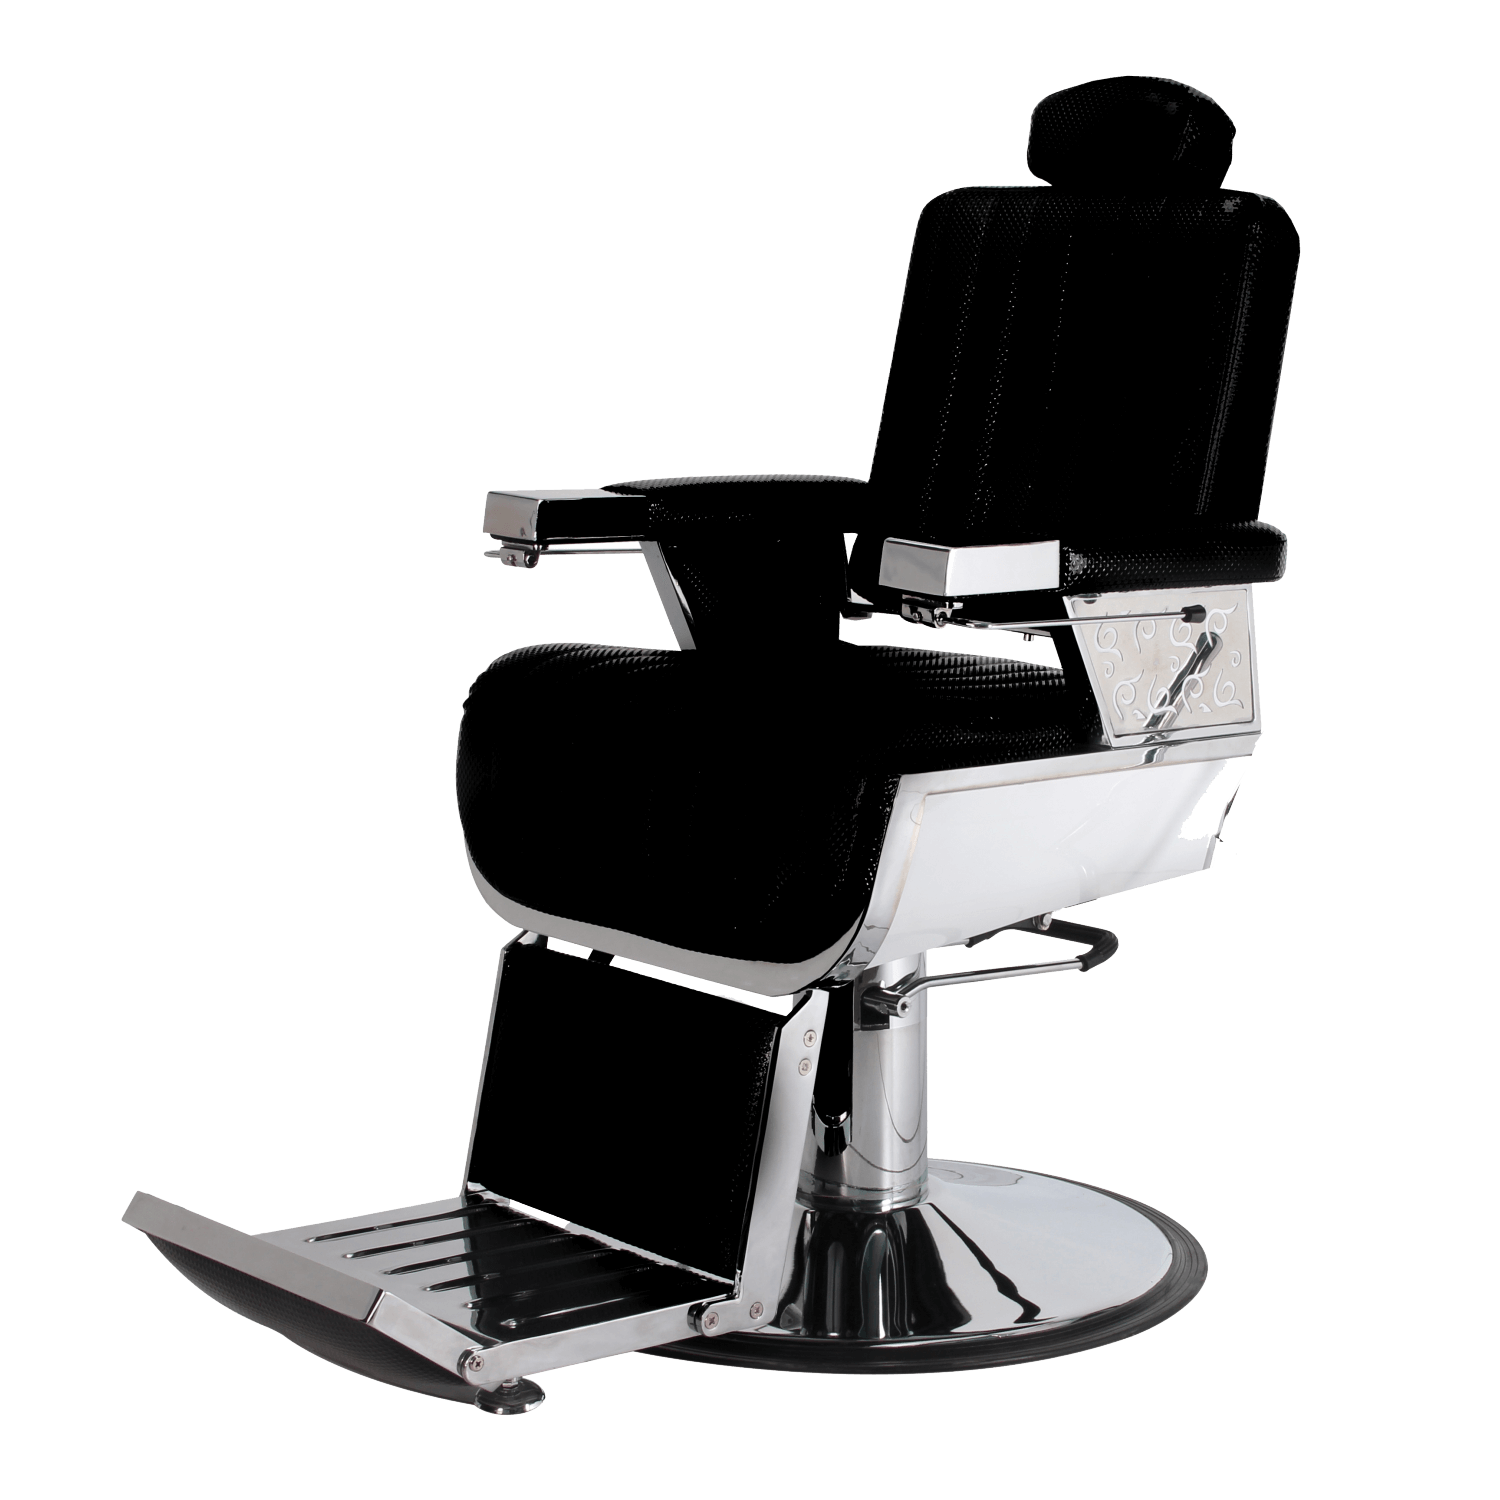 Barber Chairs Pibbs Grande Barber Chair